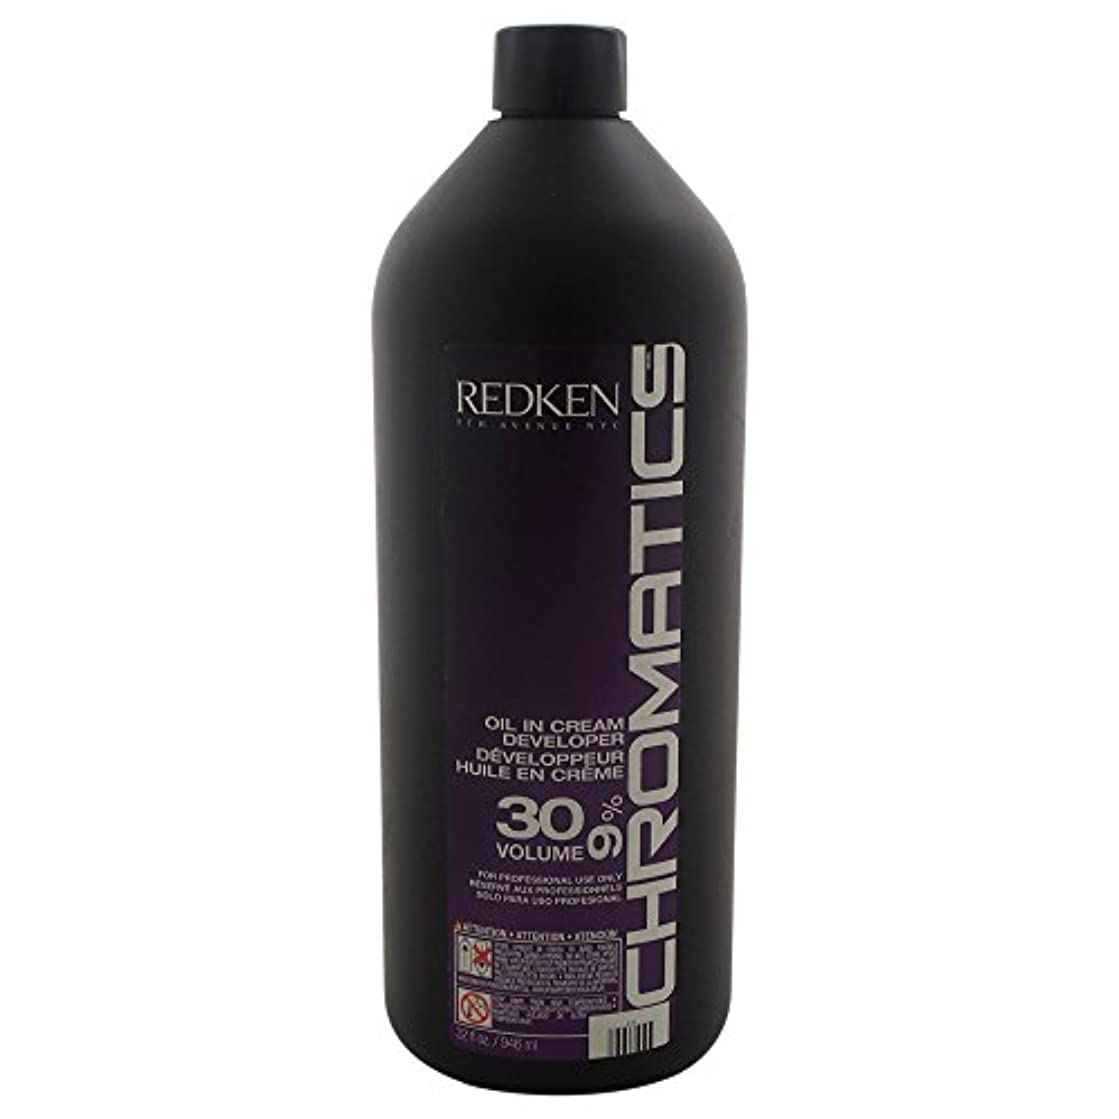 道路を作るプロセス第二官僚Redken Chromatics Oil In Cream Developer 30 Volume 9 Percent Cream, 32 Ounce by Redken